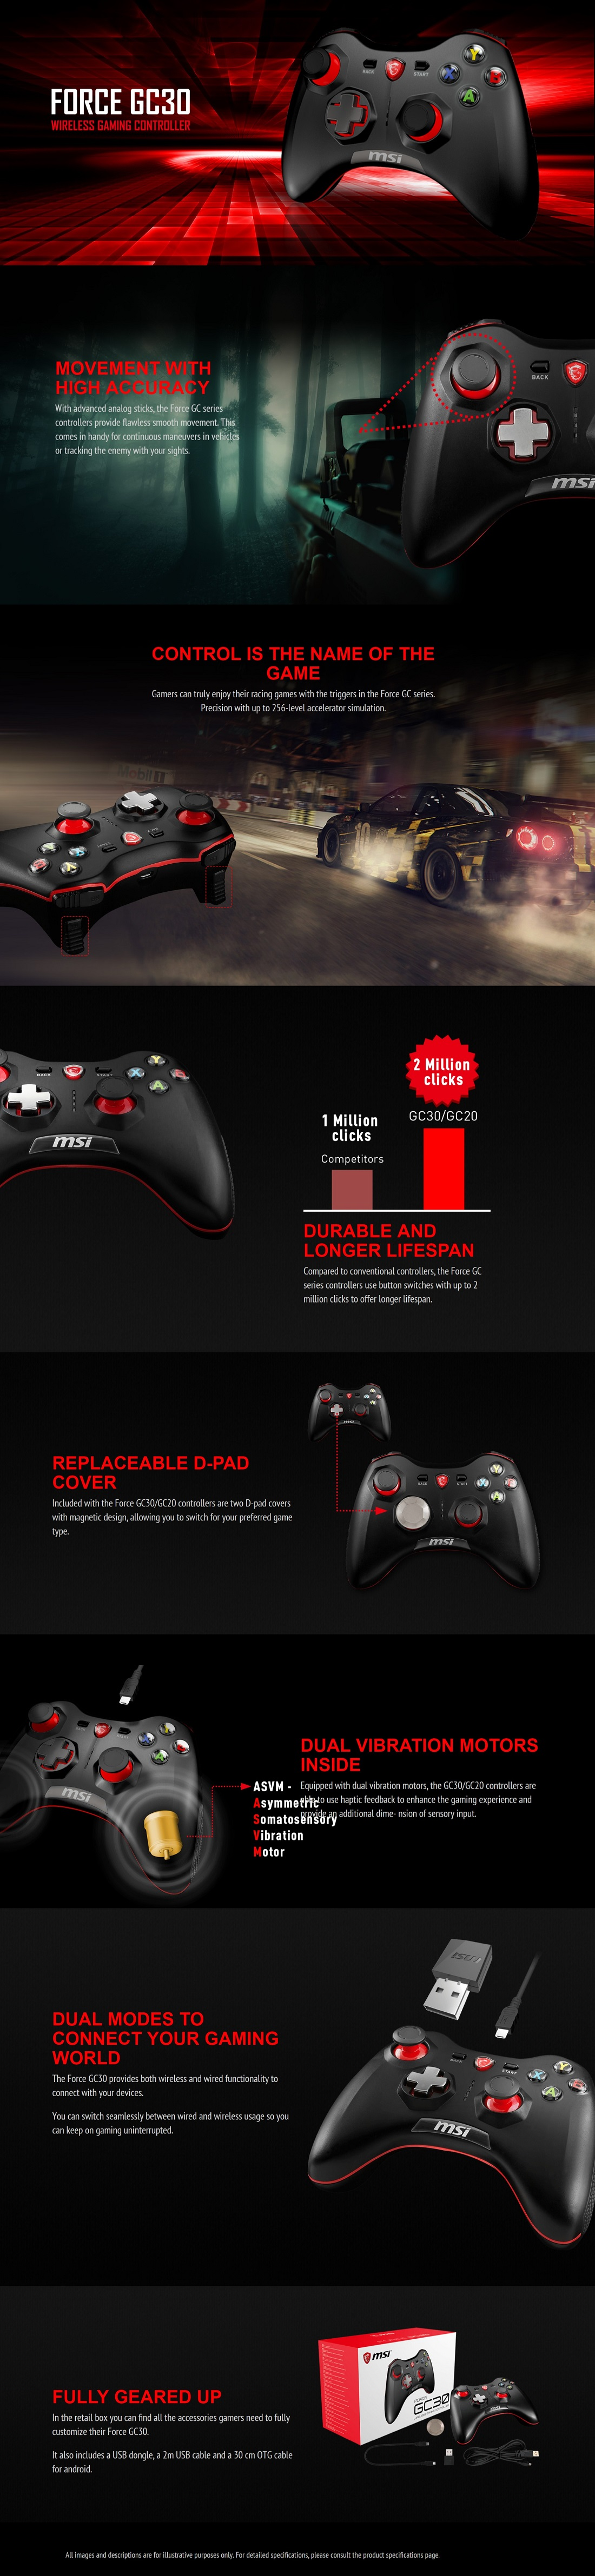 MSI GC30 Wireless Gaming Controller Support PC, Android and Popular Consoles